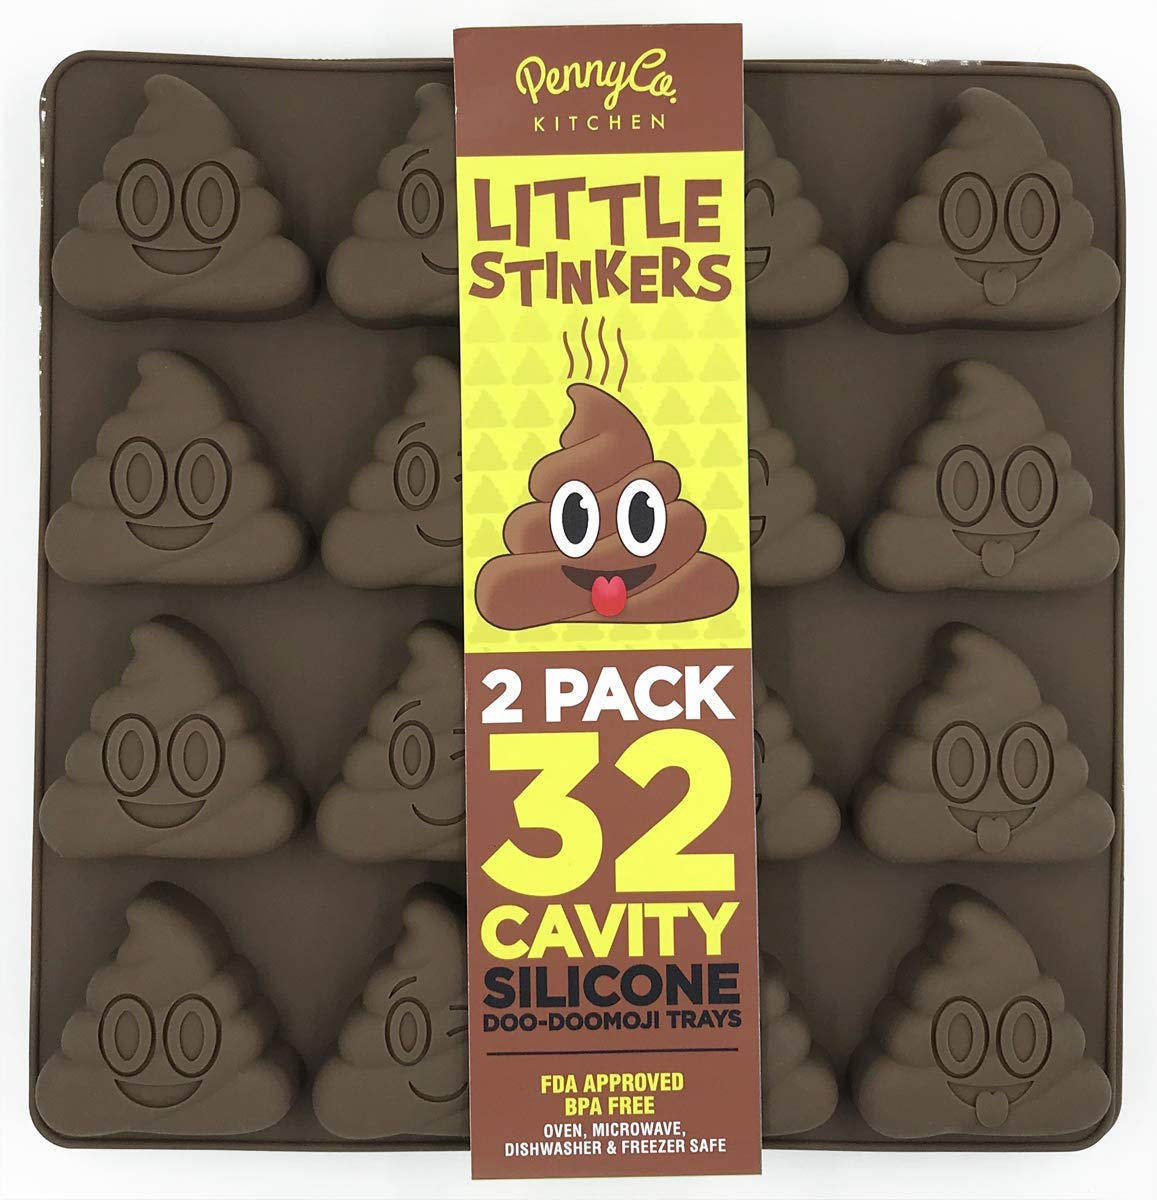 Poo Emoji Silicone Molds 32 Cavity 2 Pack Set by PennyCo Kitchen by PennyCo Kitchen